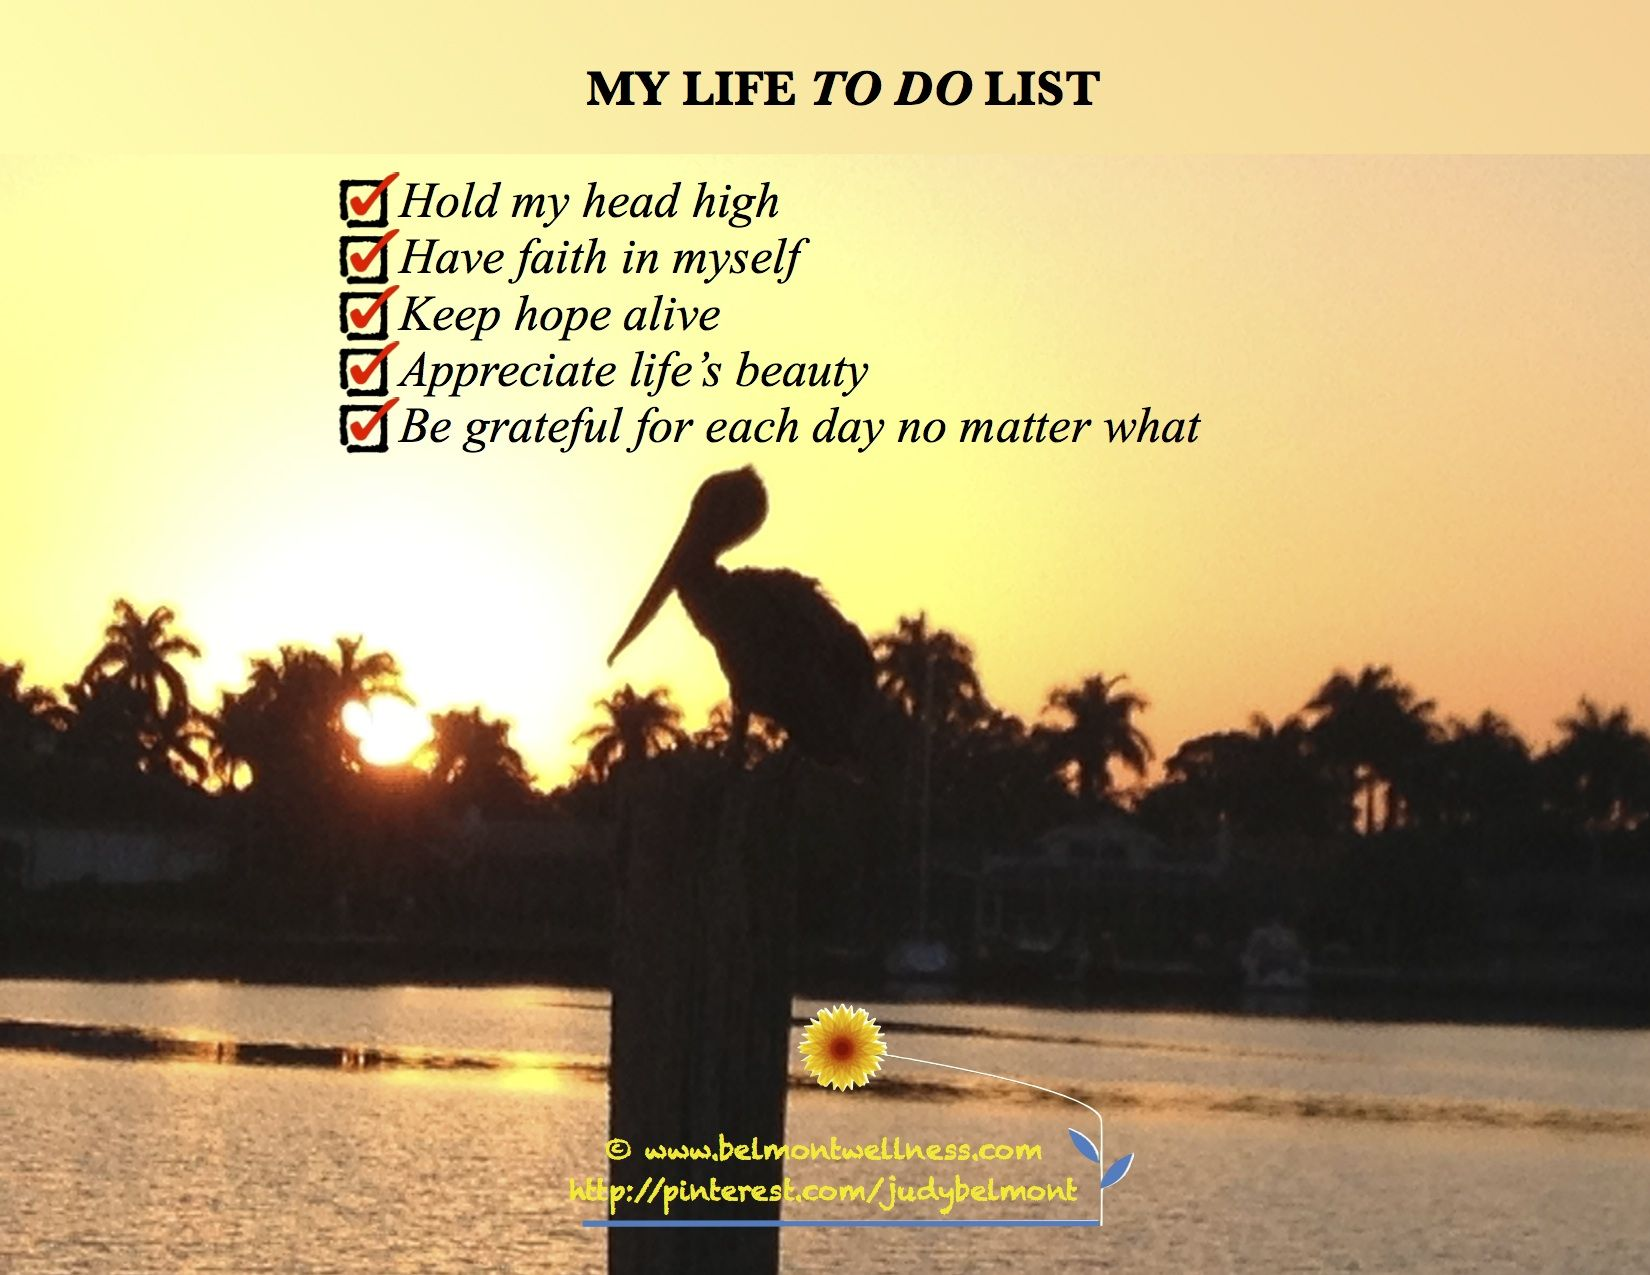 List Of Inspirational Quotes About Life My Life To Do List Hold My Head Highhave Faith In Myselfkeep